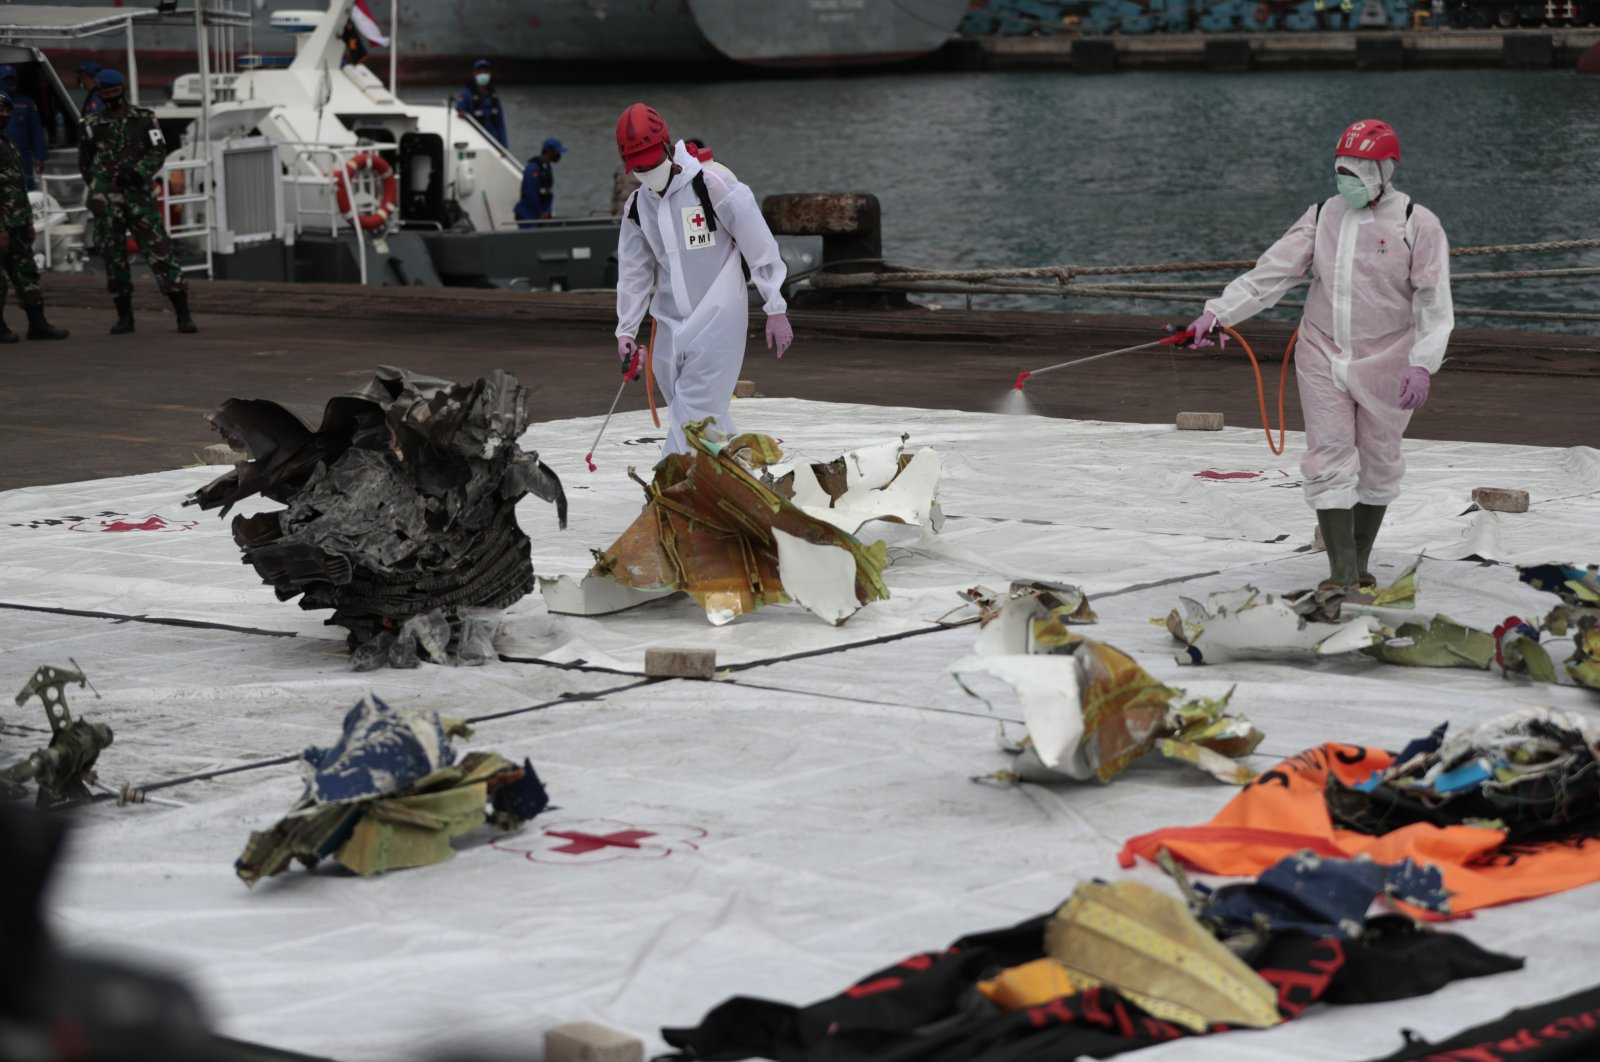 Workers spray disinfectant at parts of aircraft recovered from Java Sea where a Sriwijaya Air passenger jet crashed, at Tanjung Priok Port in Jakarta, Indonesia, Monday, Jan. 11, 2021. (AP Photo)